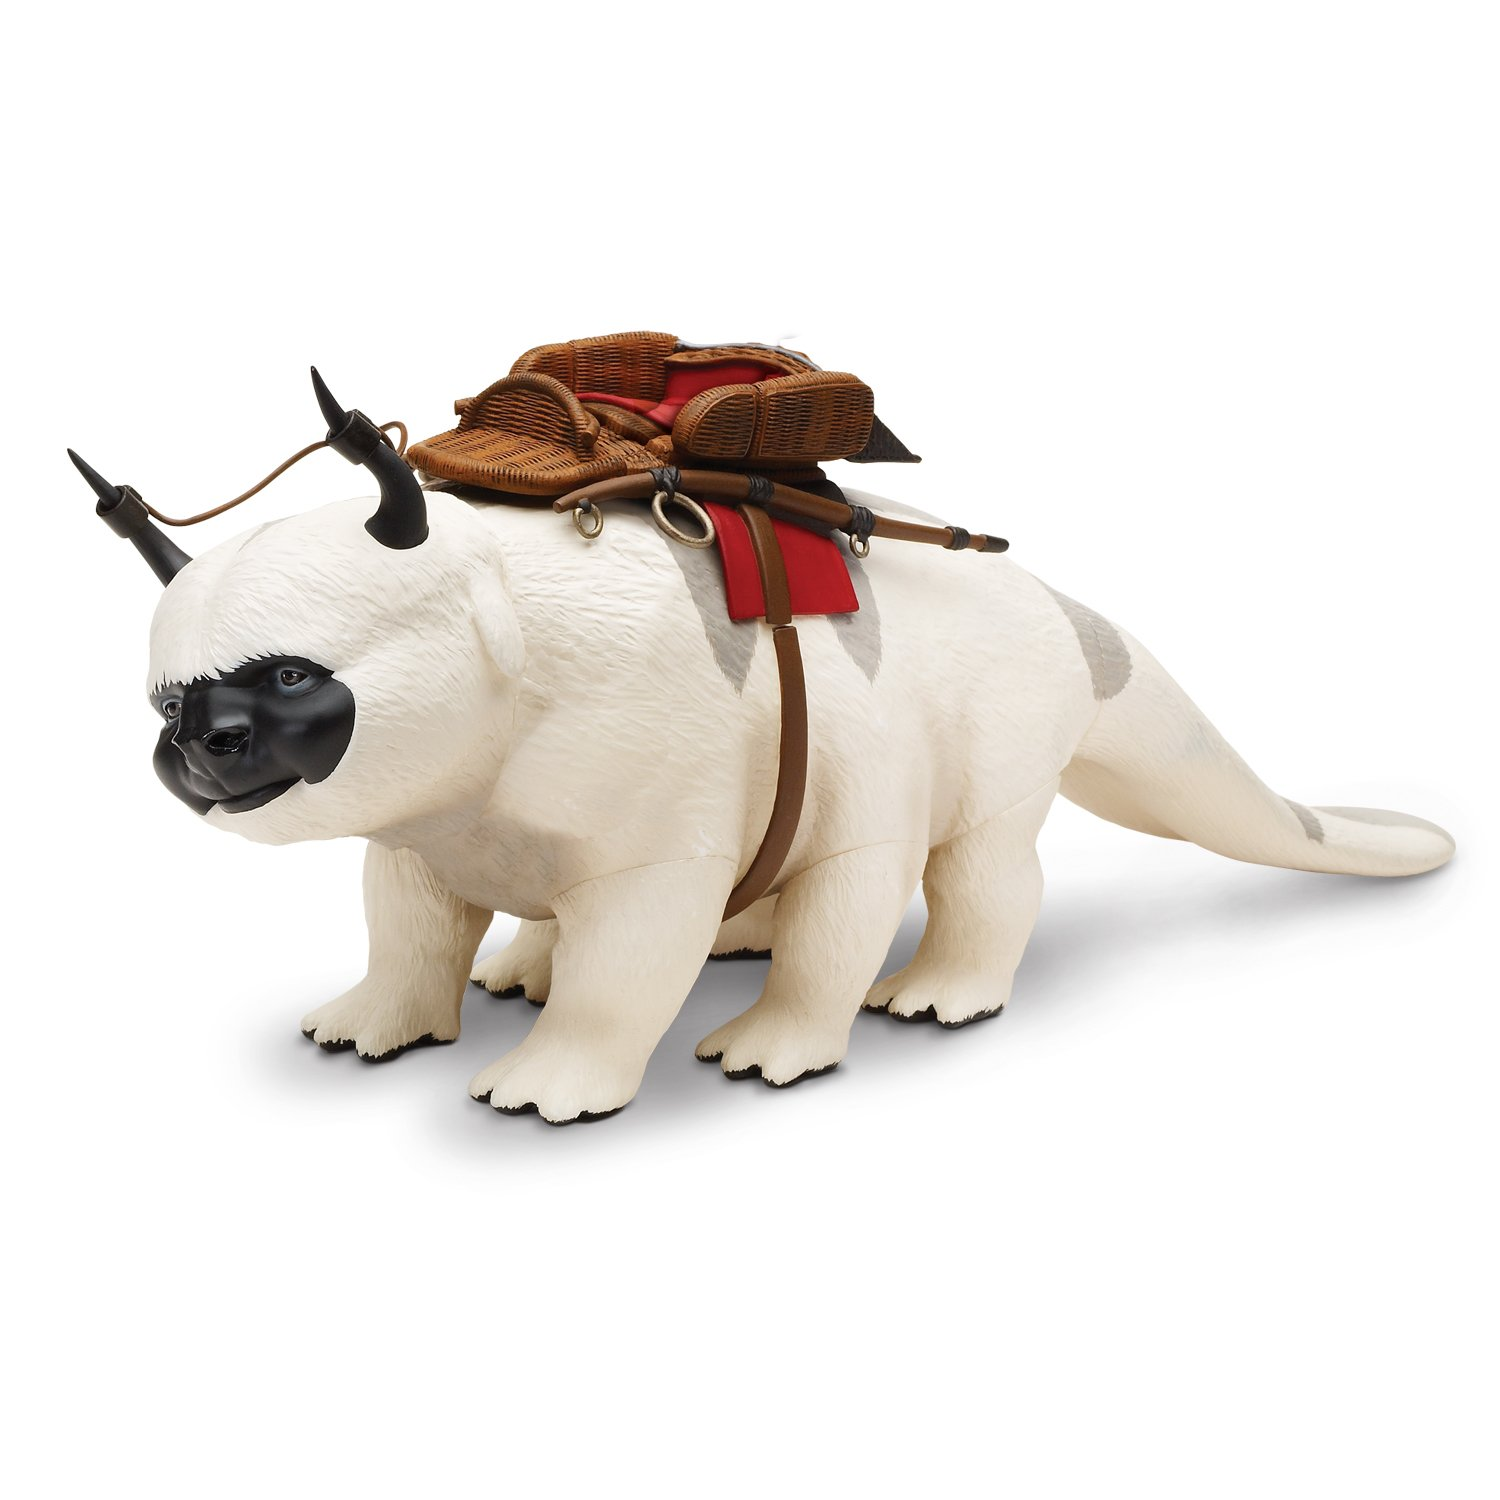 The Last Airbender Appa Deluxe Figure Spin Master 6013791